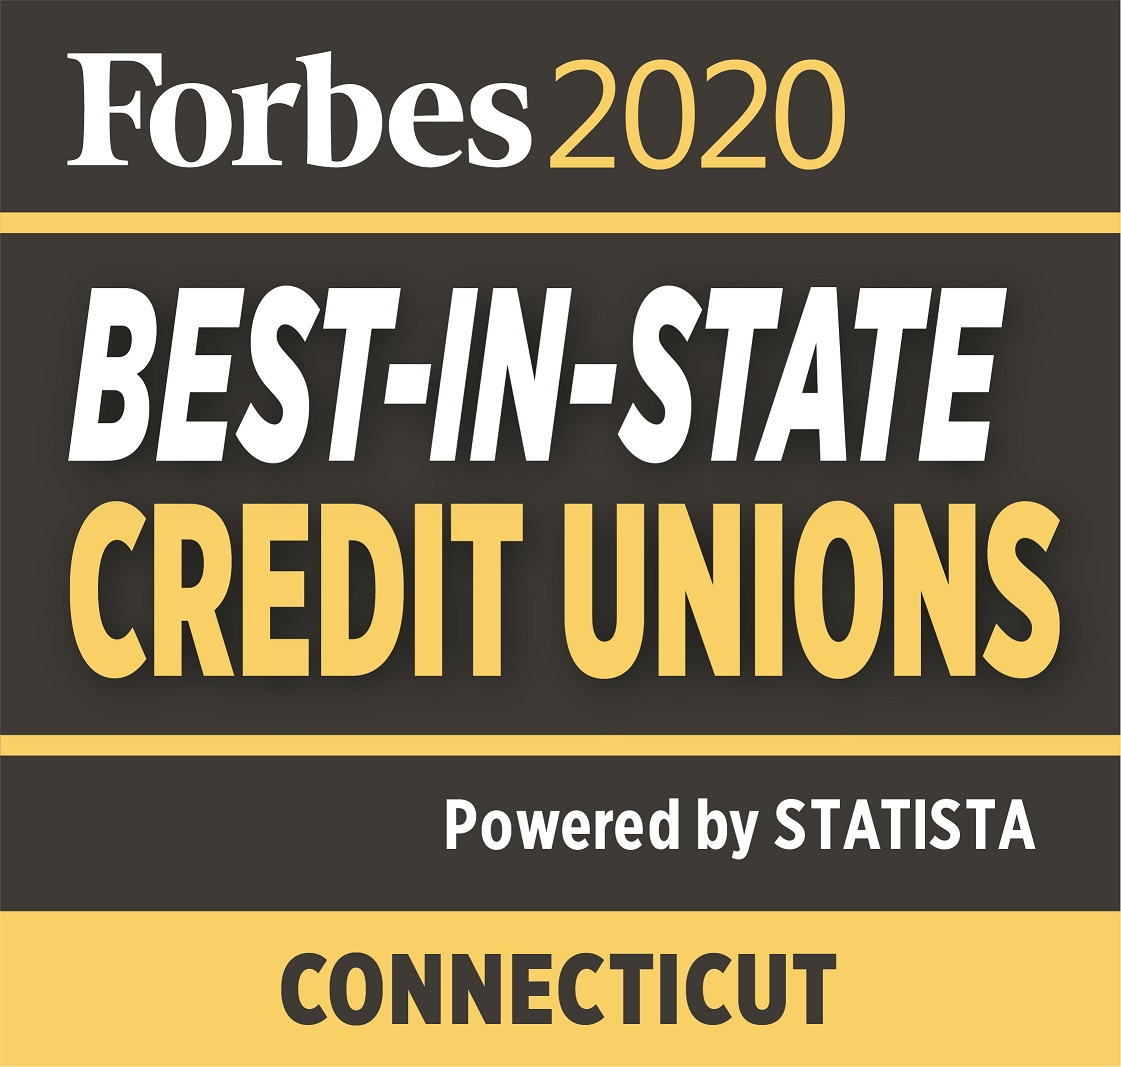 Forbes 2020 Best-In-State Credit Unions Powered by Statista Connecticut